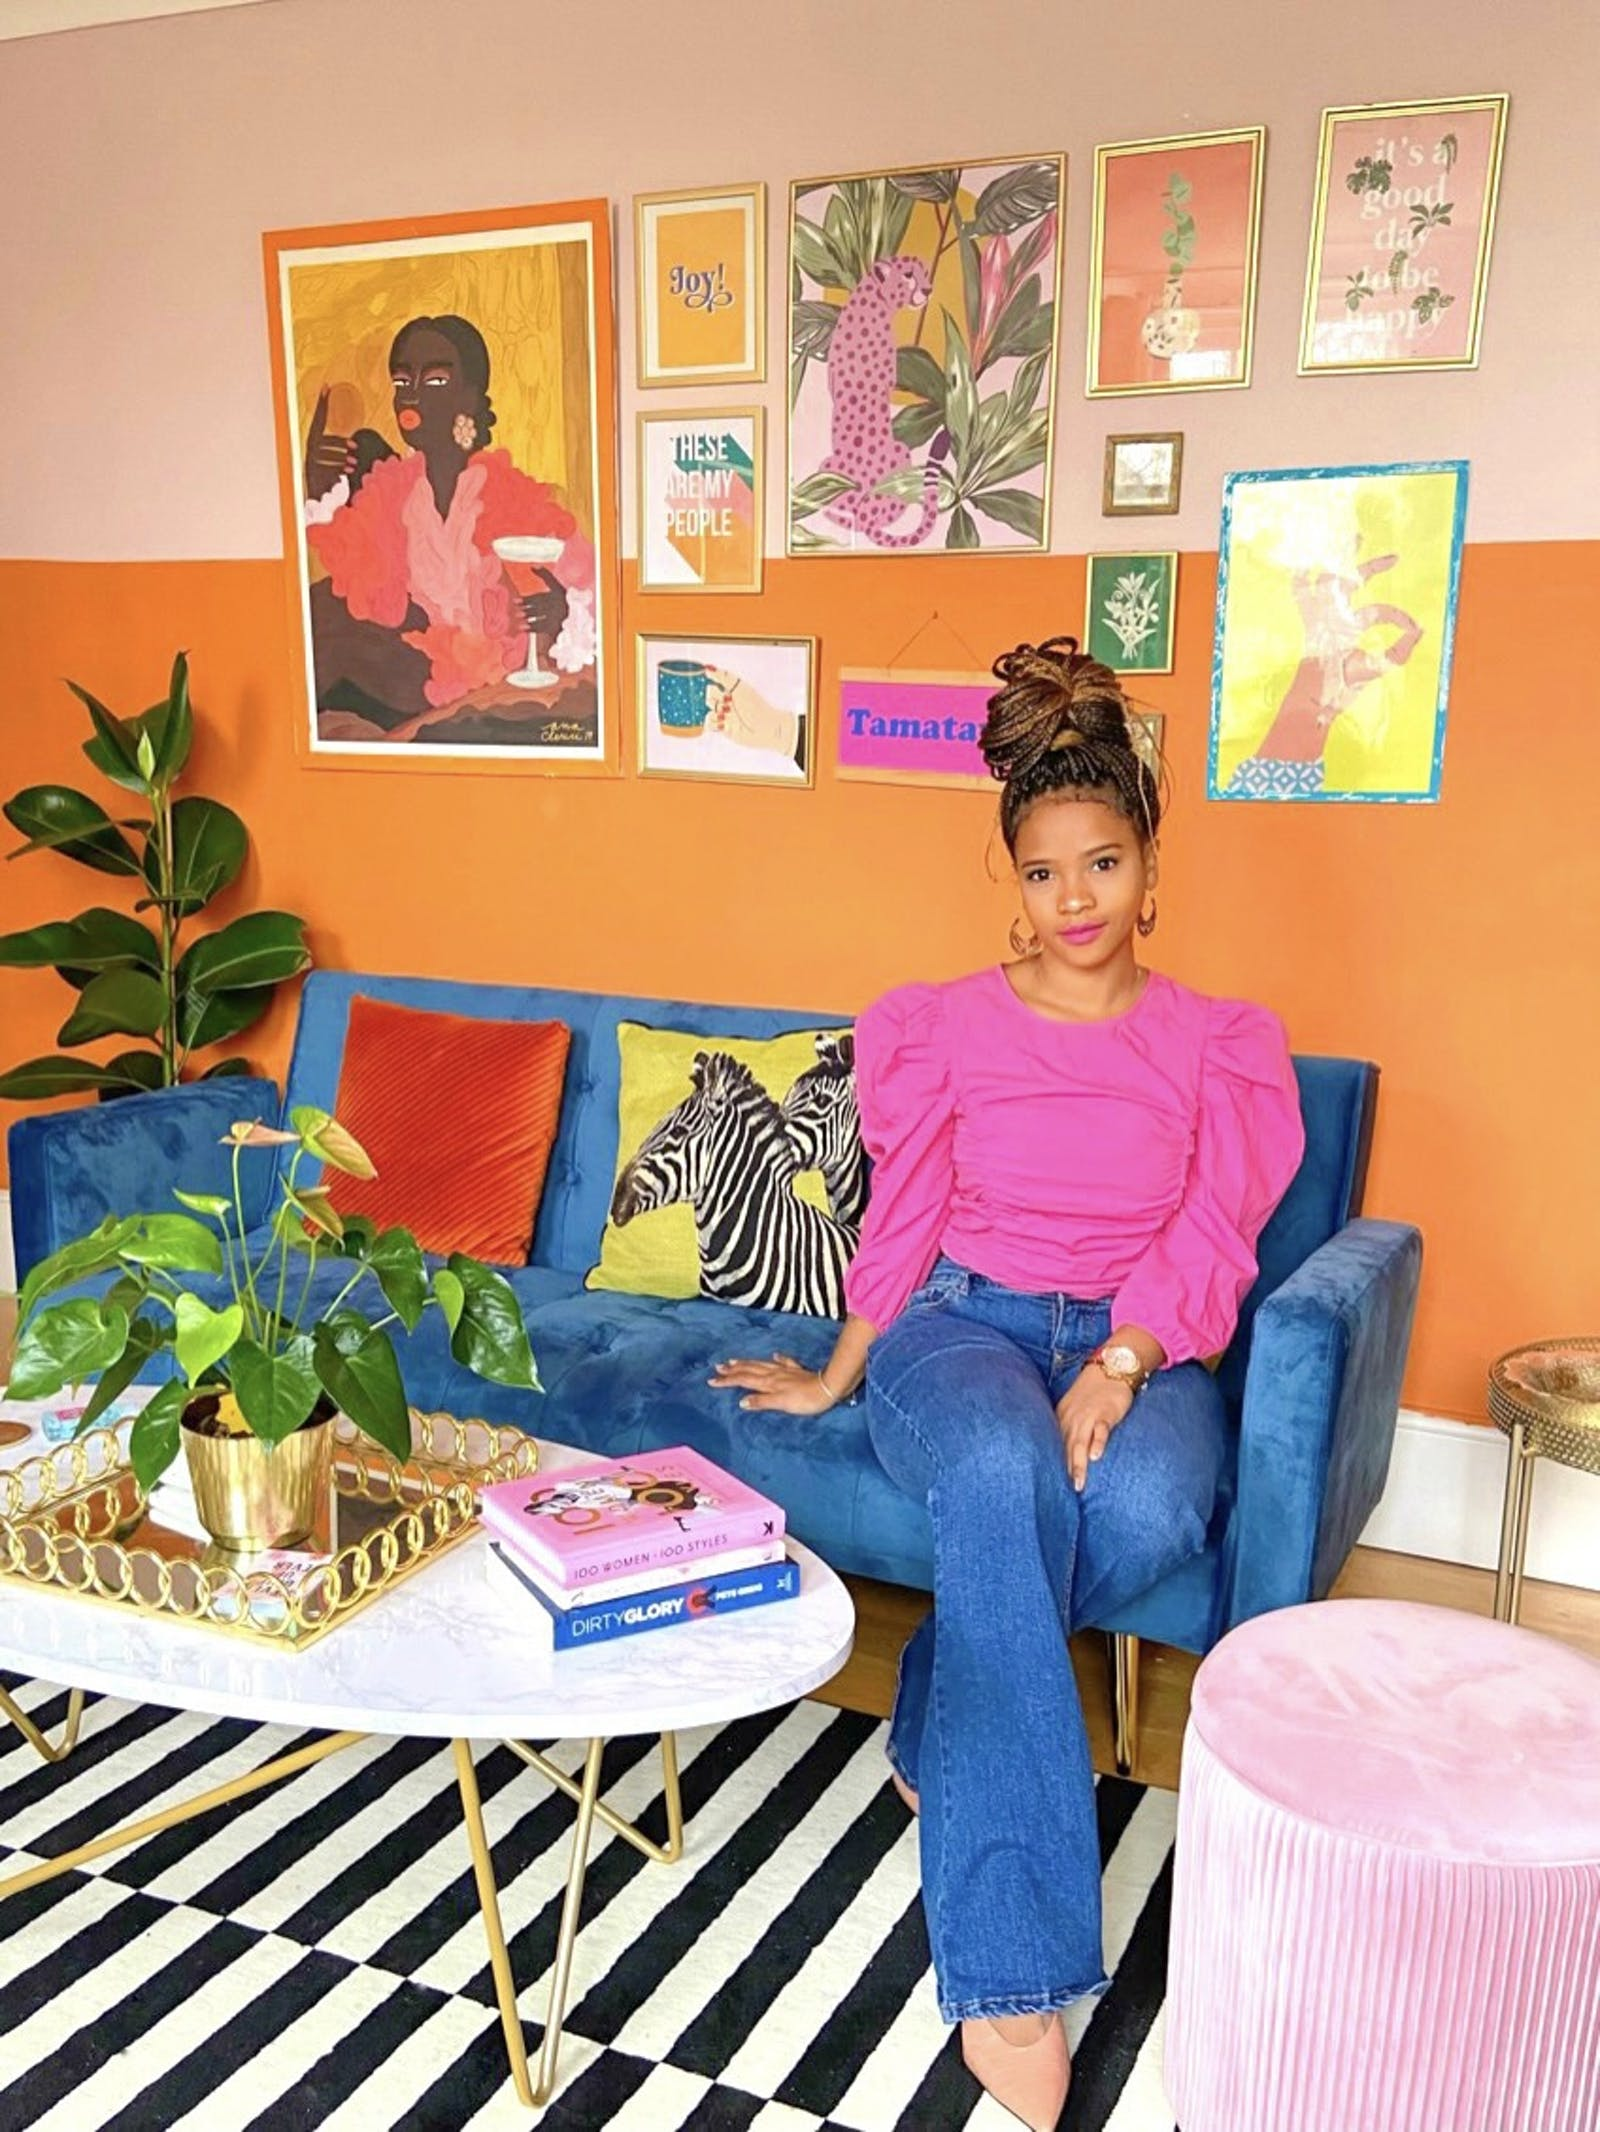 Portrait of woman sitting in brightly coloured living room with vibrant furnishings and eclectic art